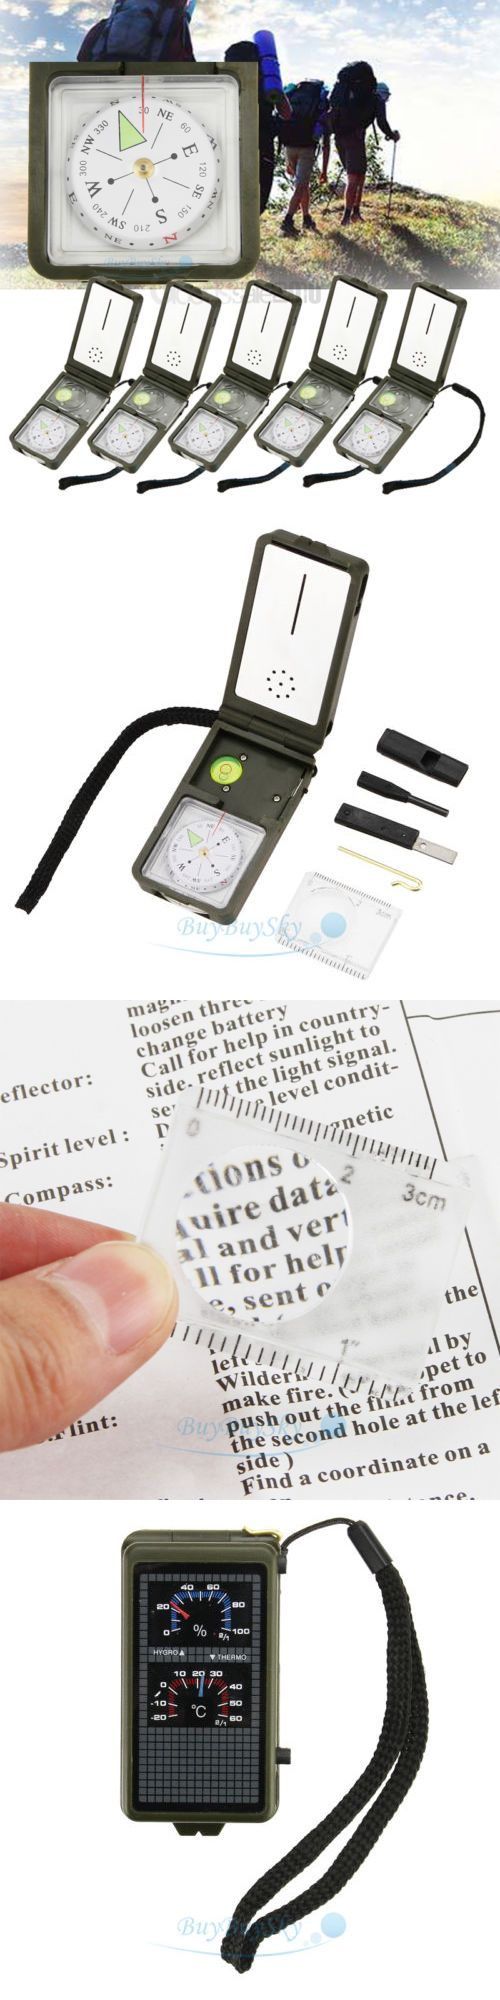 Compasses and GPS 52482: 5X Multifunction10 In1 Outdoor Military Camping Hiking Survival Tool Compass Kit -> BUY IT NOW ONLY: $32.5 on eBay!